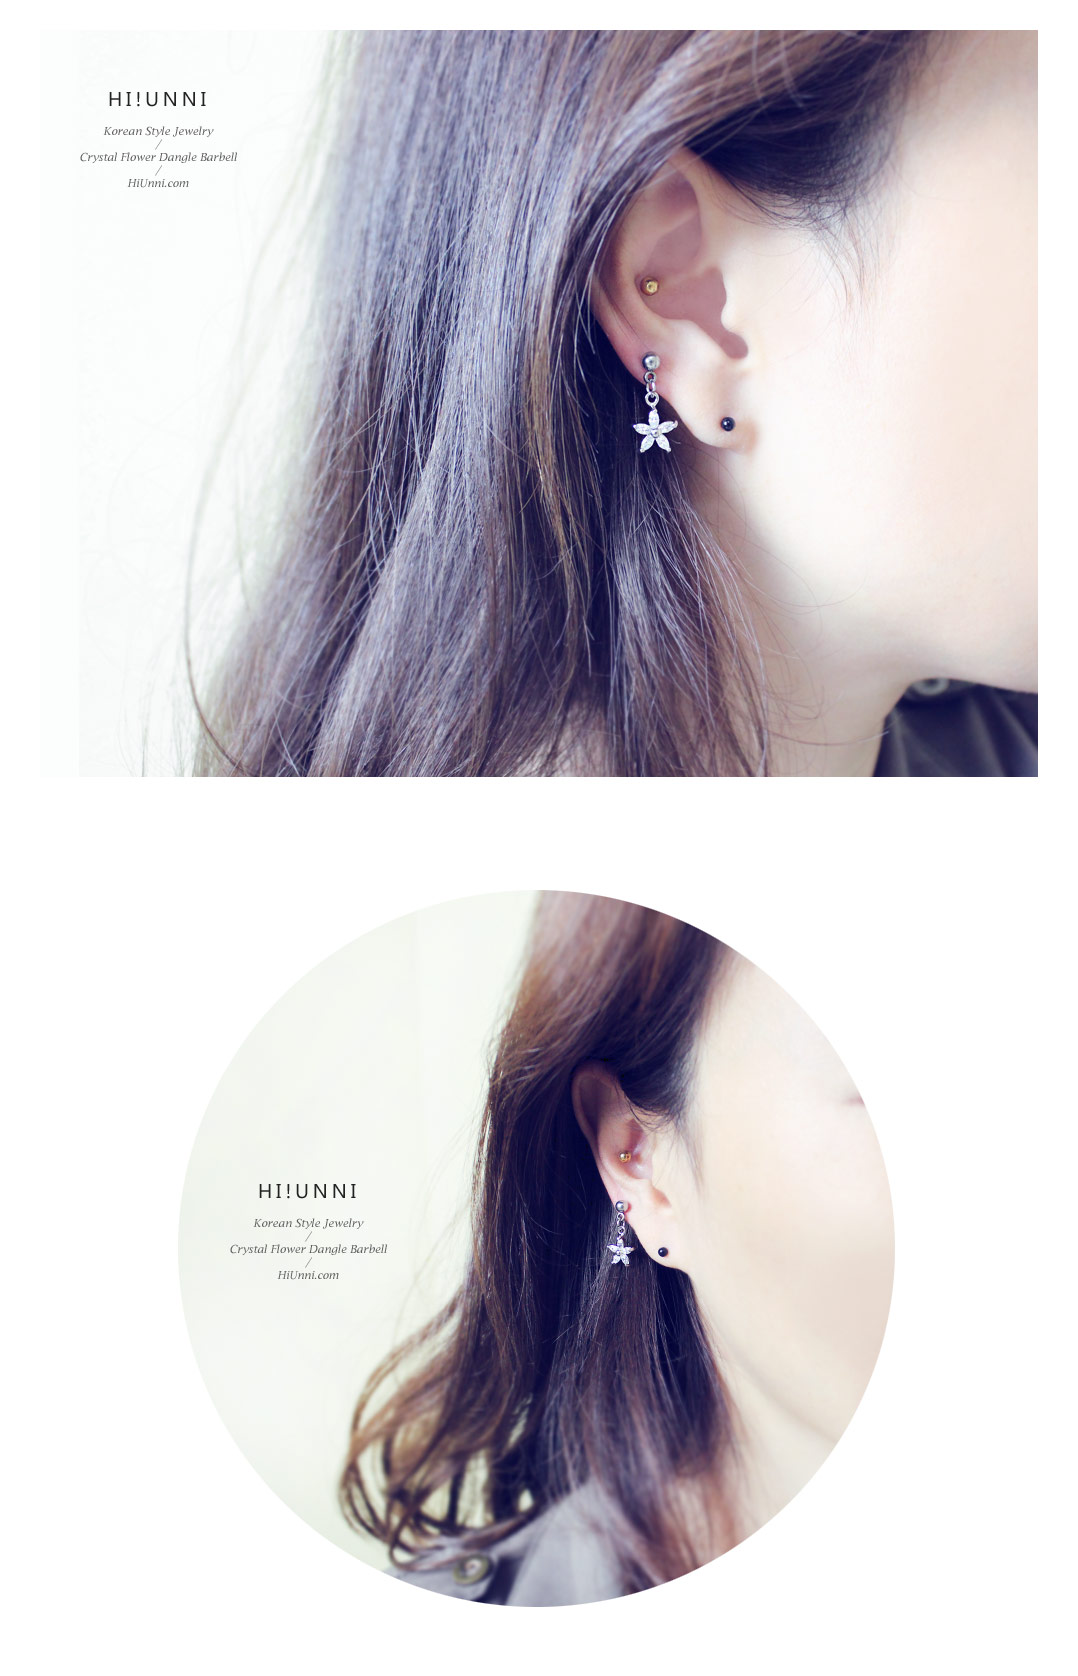 ear_studs_piercing_Cartilage_earrings_16g_316l_Surgical_Stainless_Steel_korean_asian_style_jewelry_barbell_dangle_crystal_flower_5